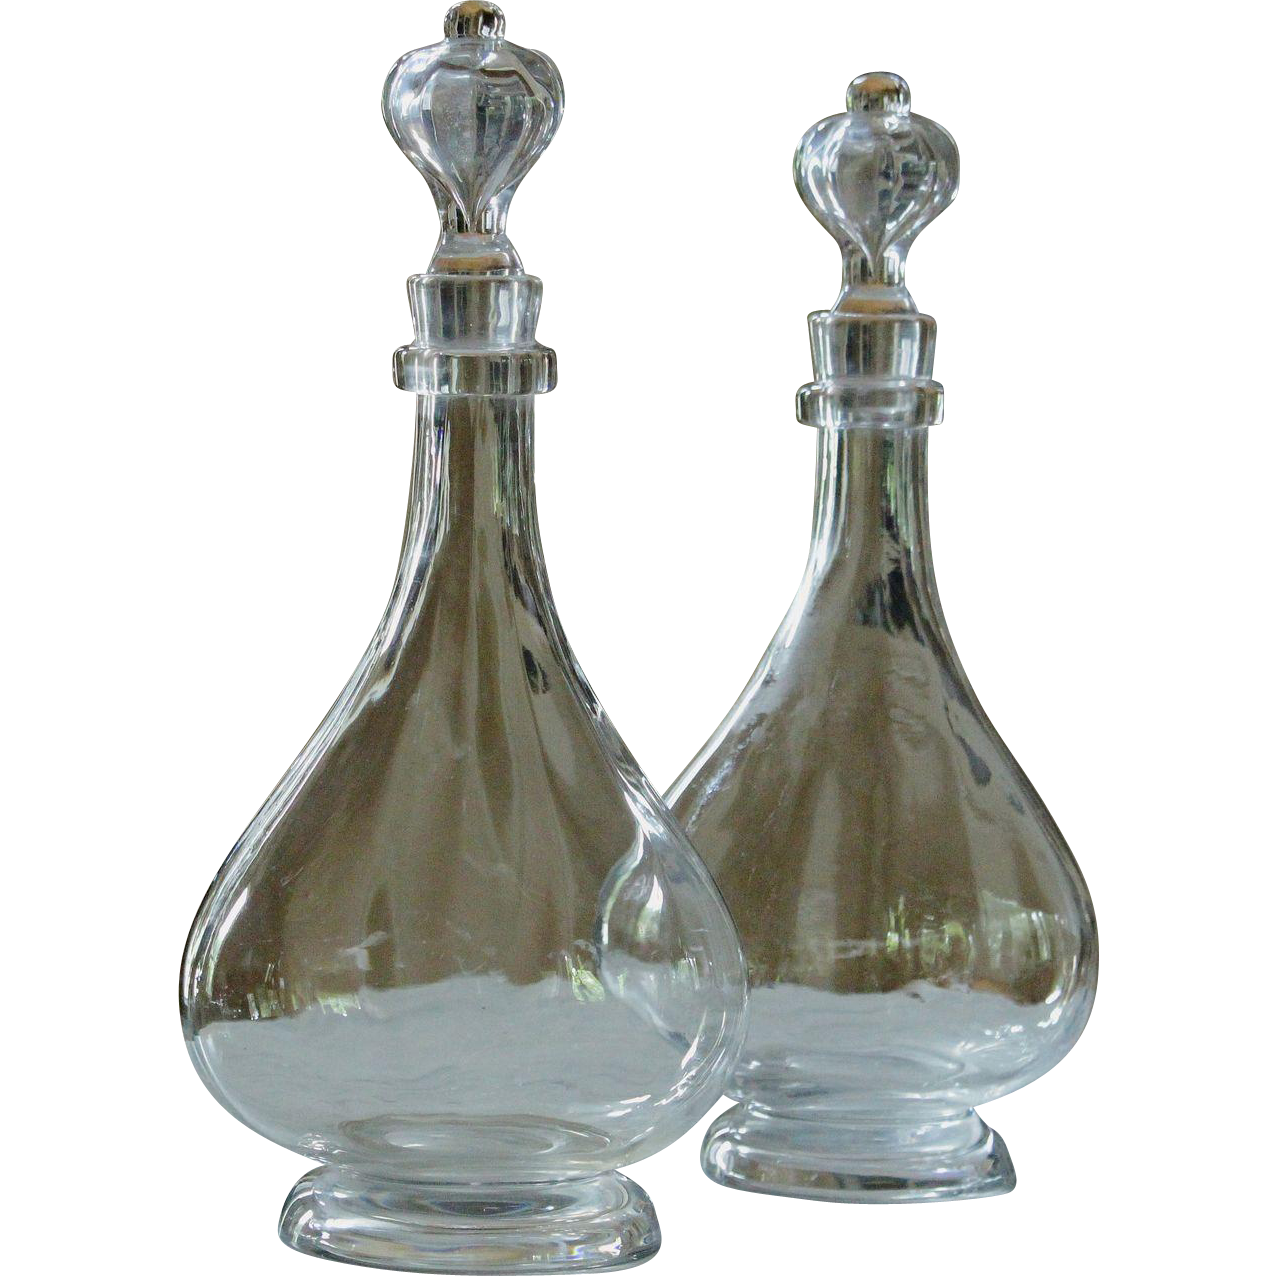 Antique 19th Century French Baccarat Crystal Glass Carafes - Decanters